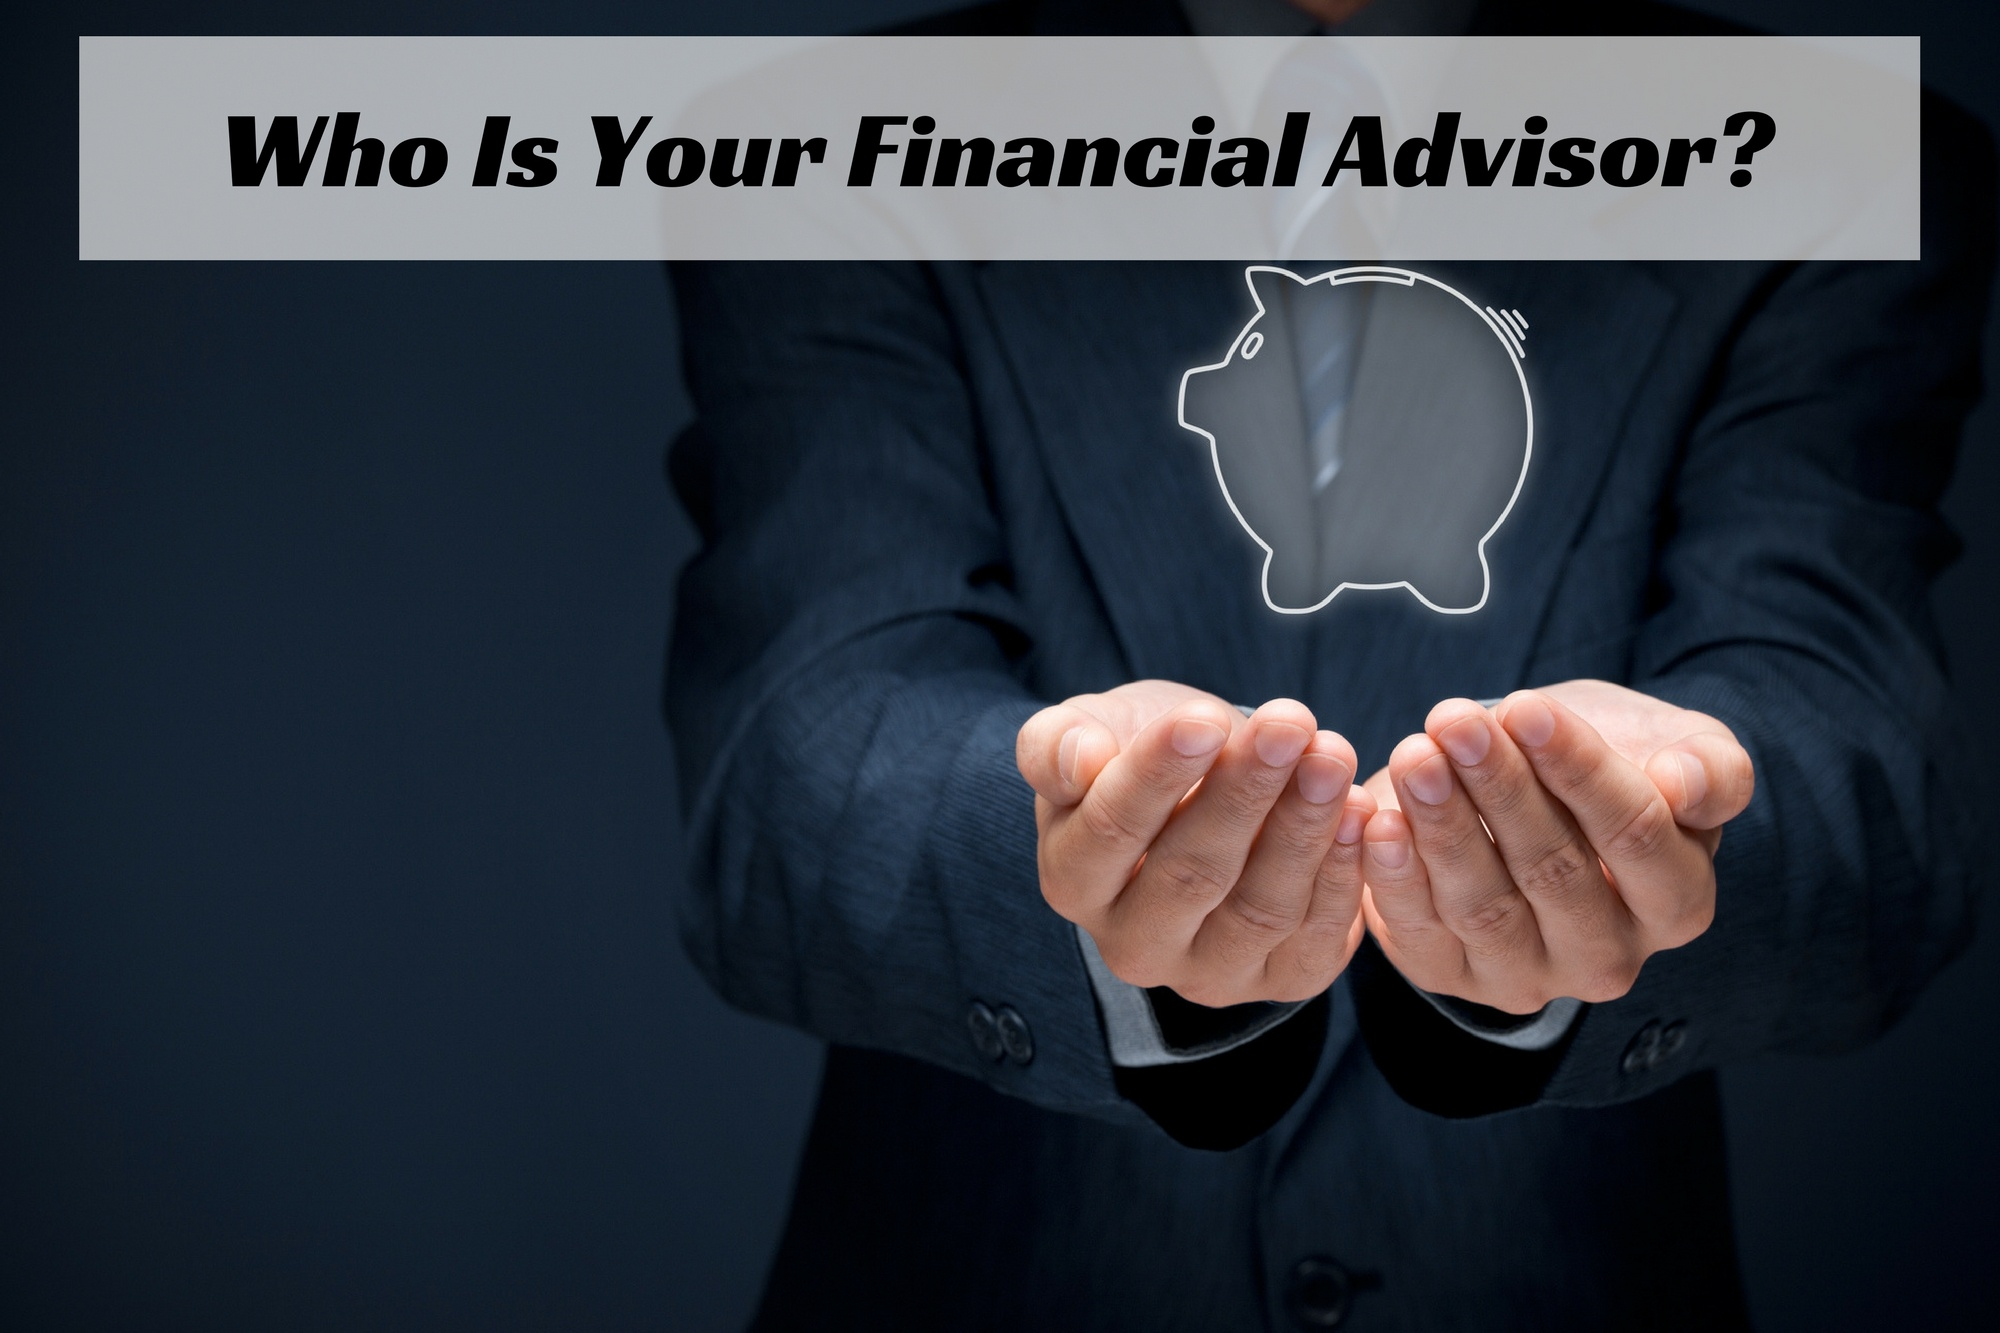 Who Is Your Financial Advisor